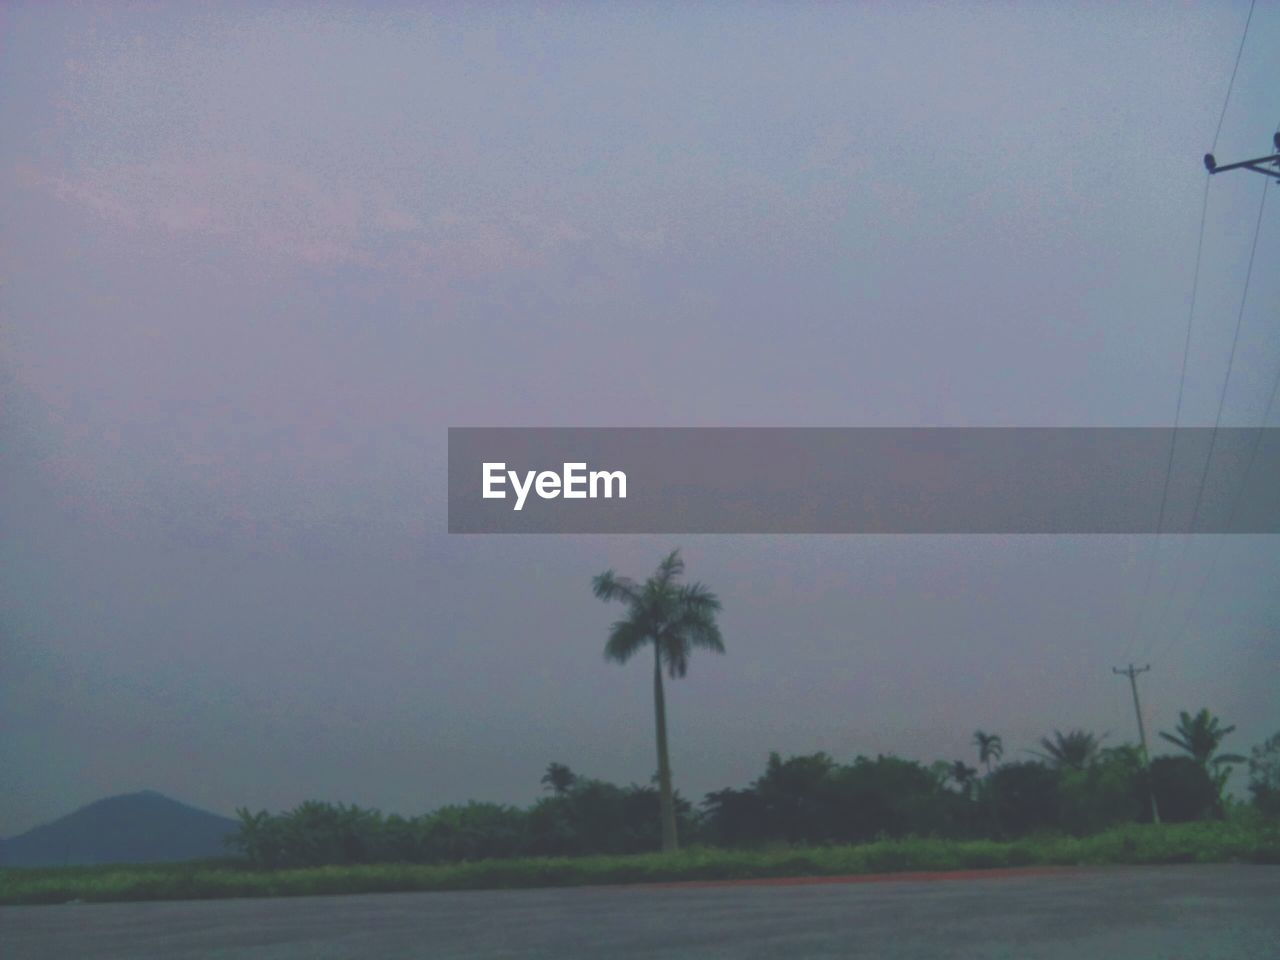 plant, tree, sky, palm tree, tropical climate, nature, beauty in nature, no people, tranquility, growth, land, field, scenics - nature, tranquil scene, outdoors, environment, landscape, dusk, fog, day, coconut palm tree